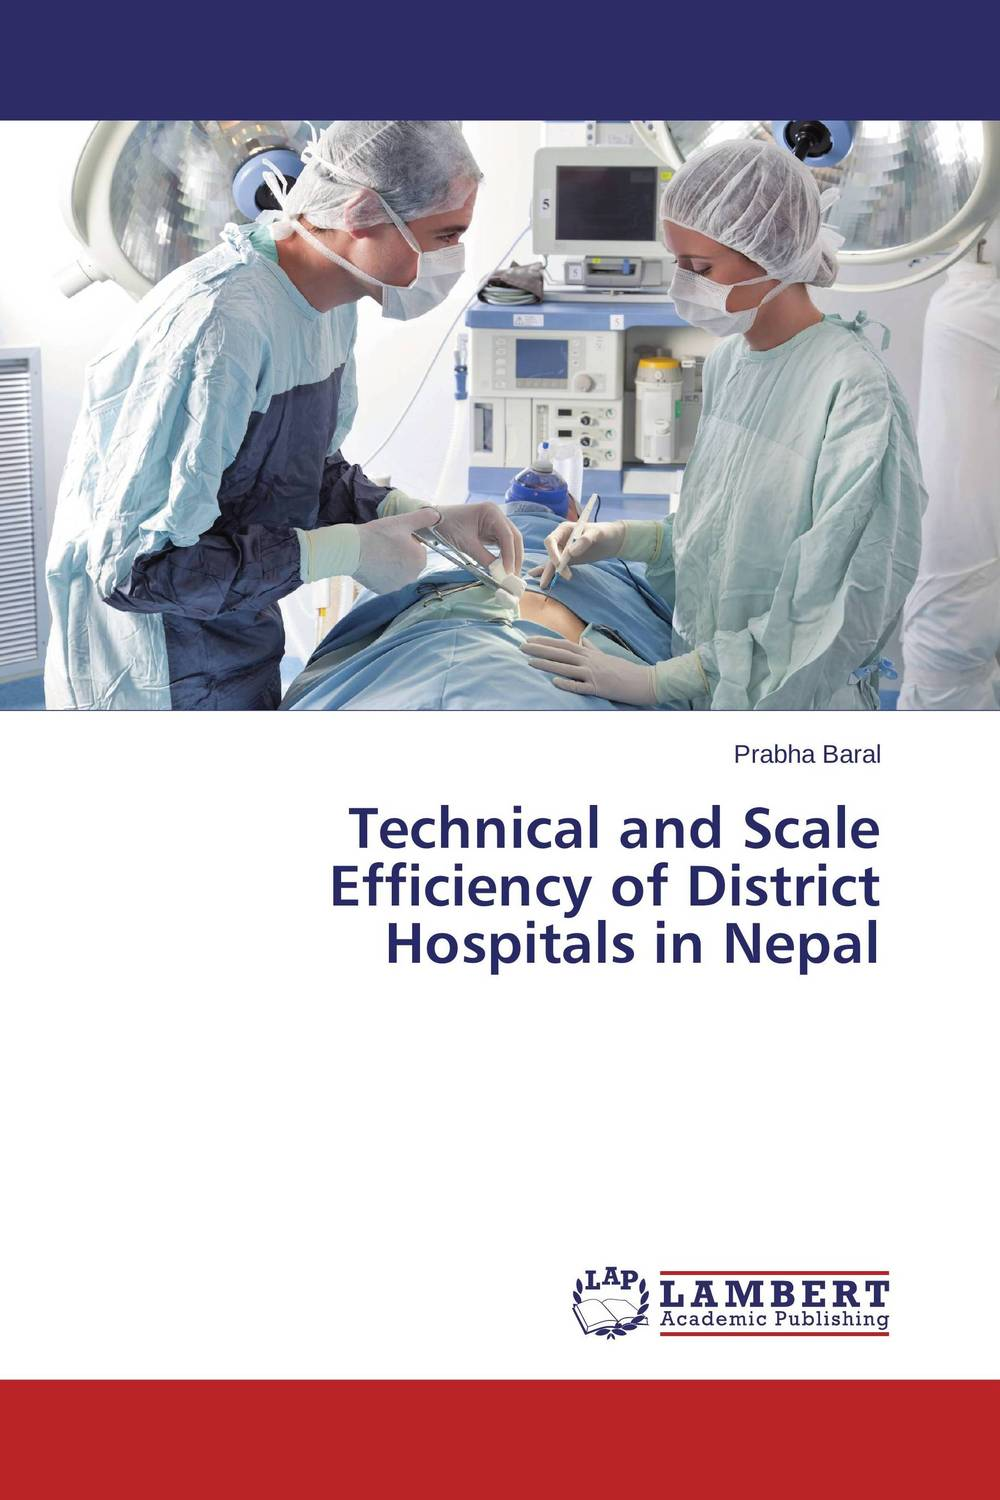 Technical and Scale Efficiency of District Hospitals in Nepal cnc machining and fabrication with efficiency quality and precision in 2015 431